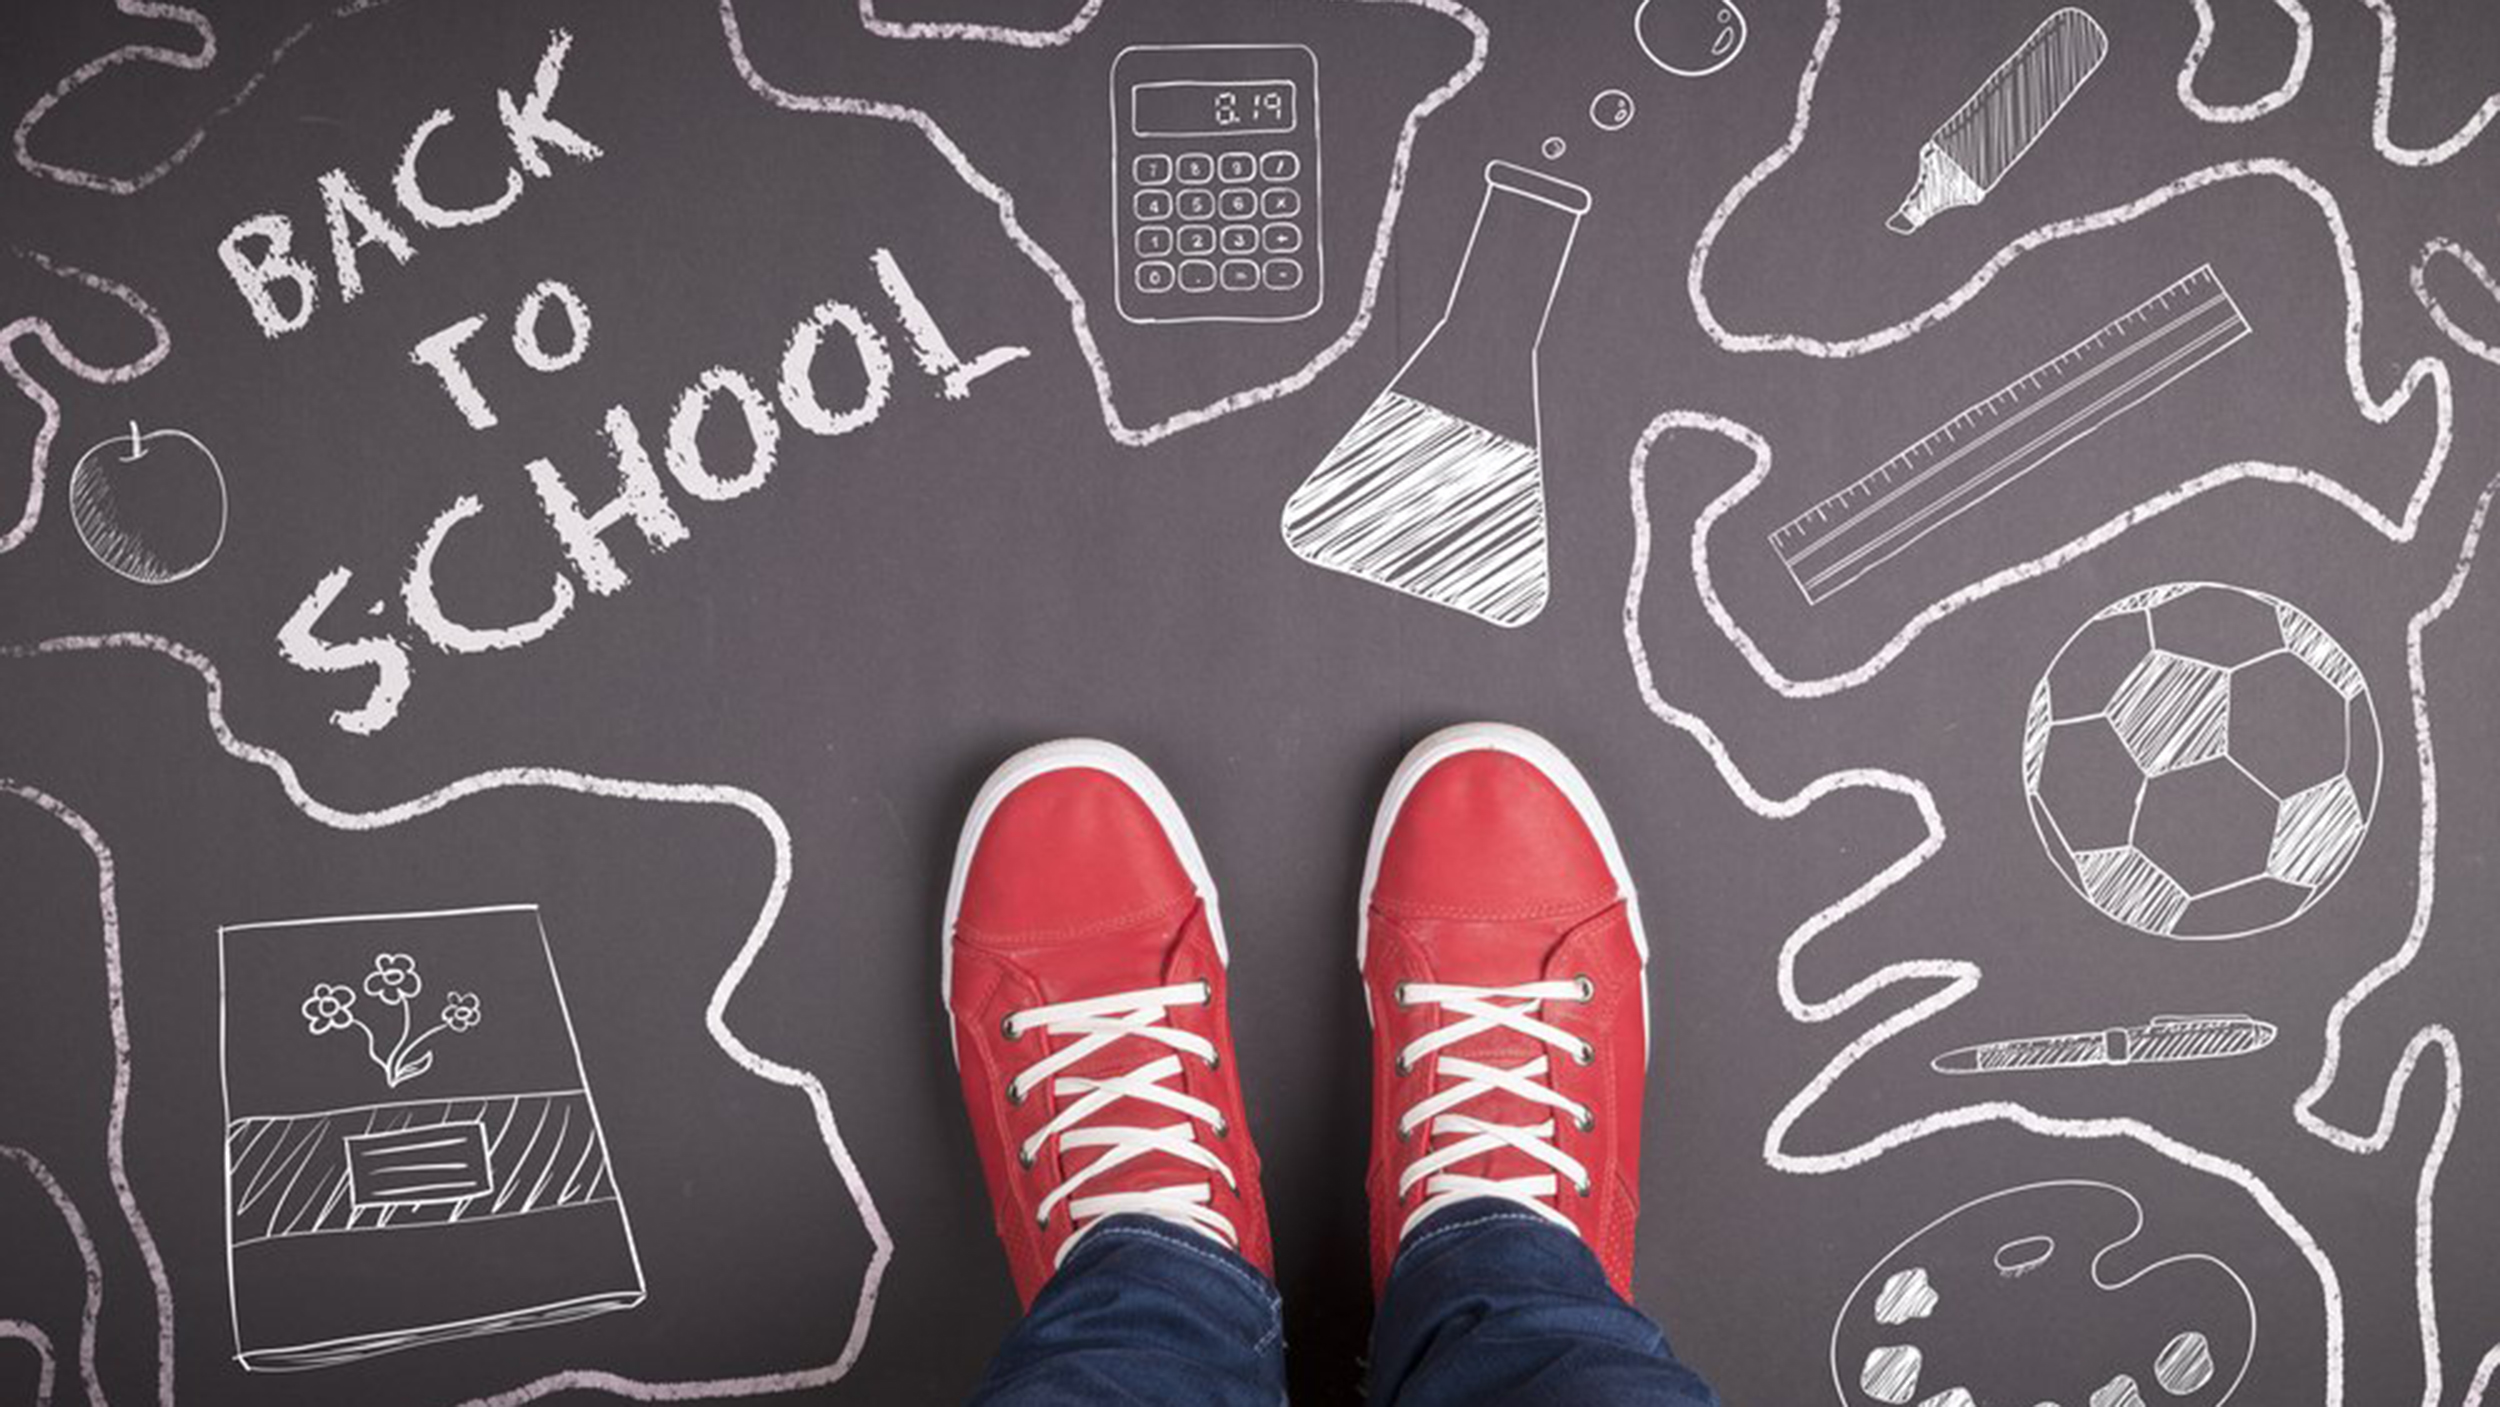 back to b school School supply list - find the school supplies list your child needs for their elementary, middle or high school.